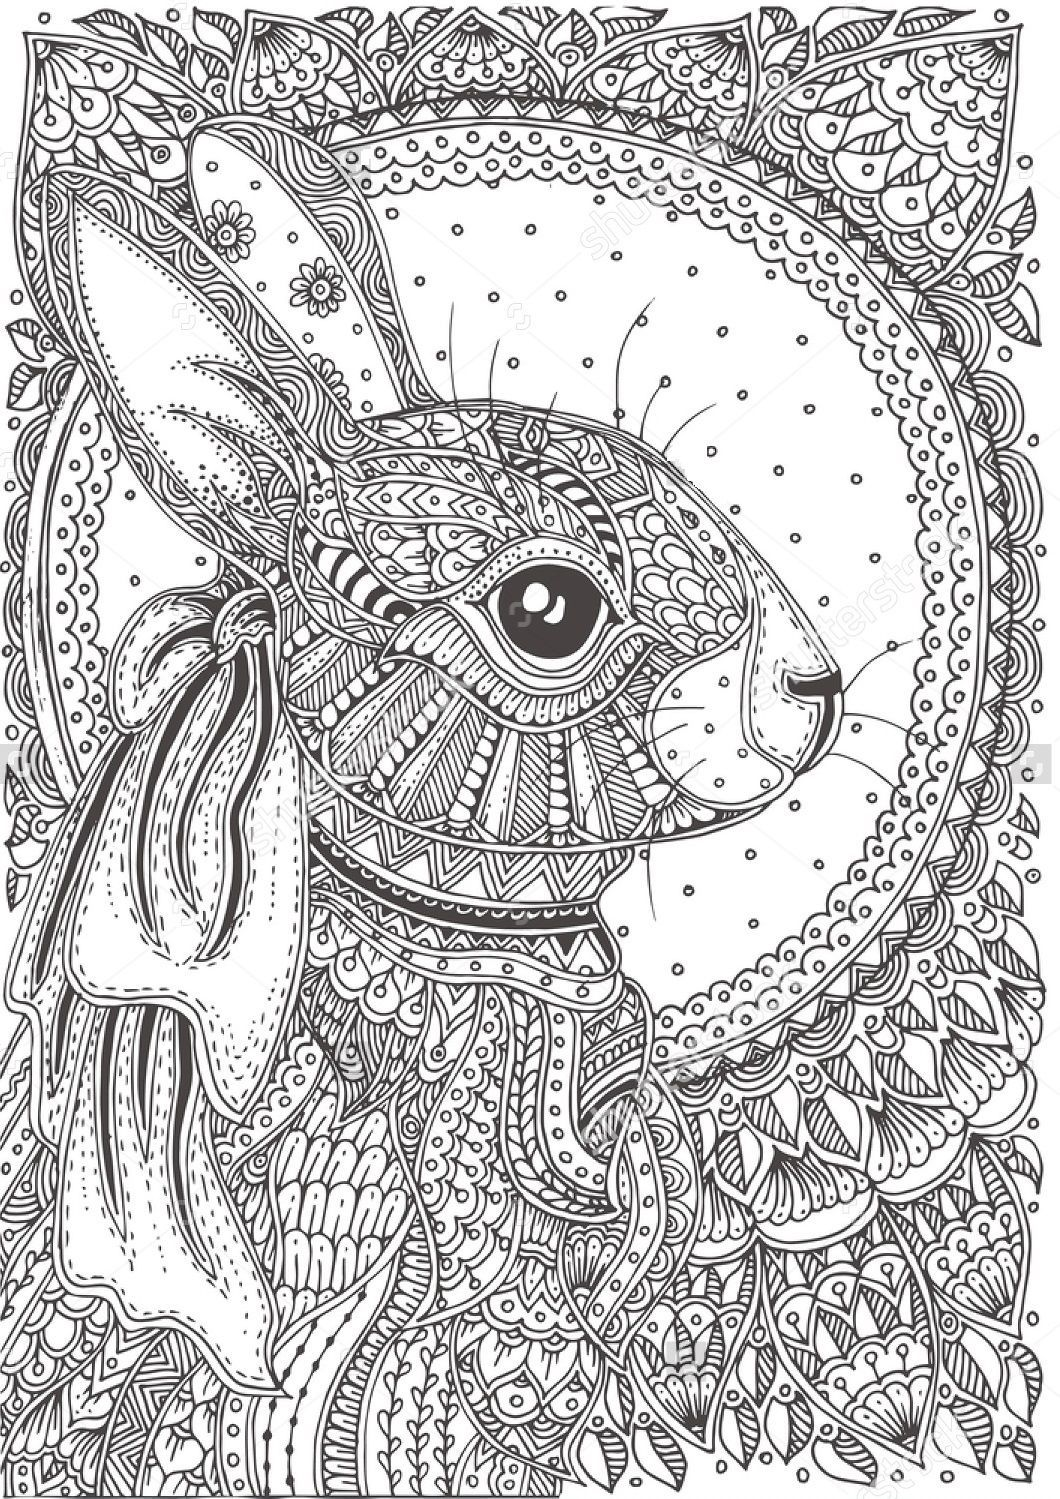 Pin By Rita Reddell On Big Kids Color Pattern Coloring Pages Bunny Coloring Pages Animal Coloring Pages